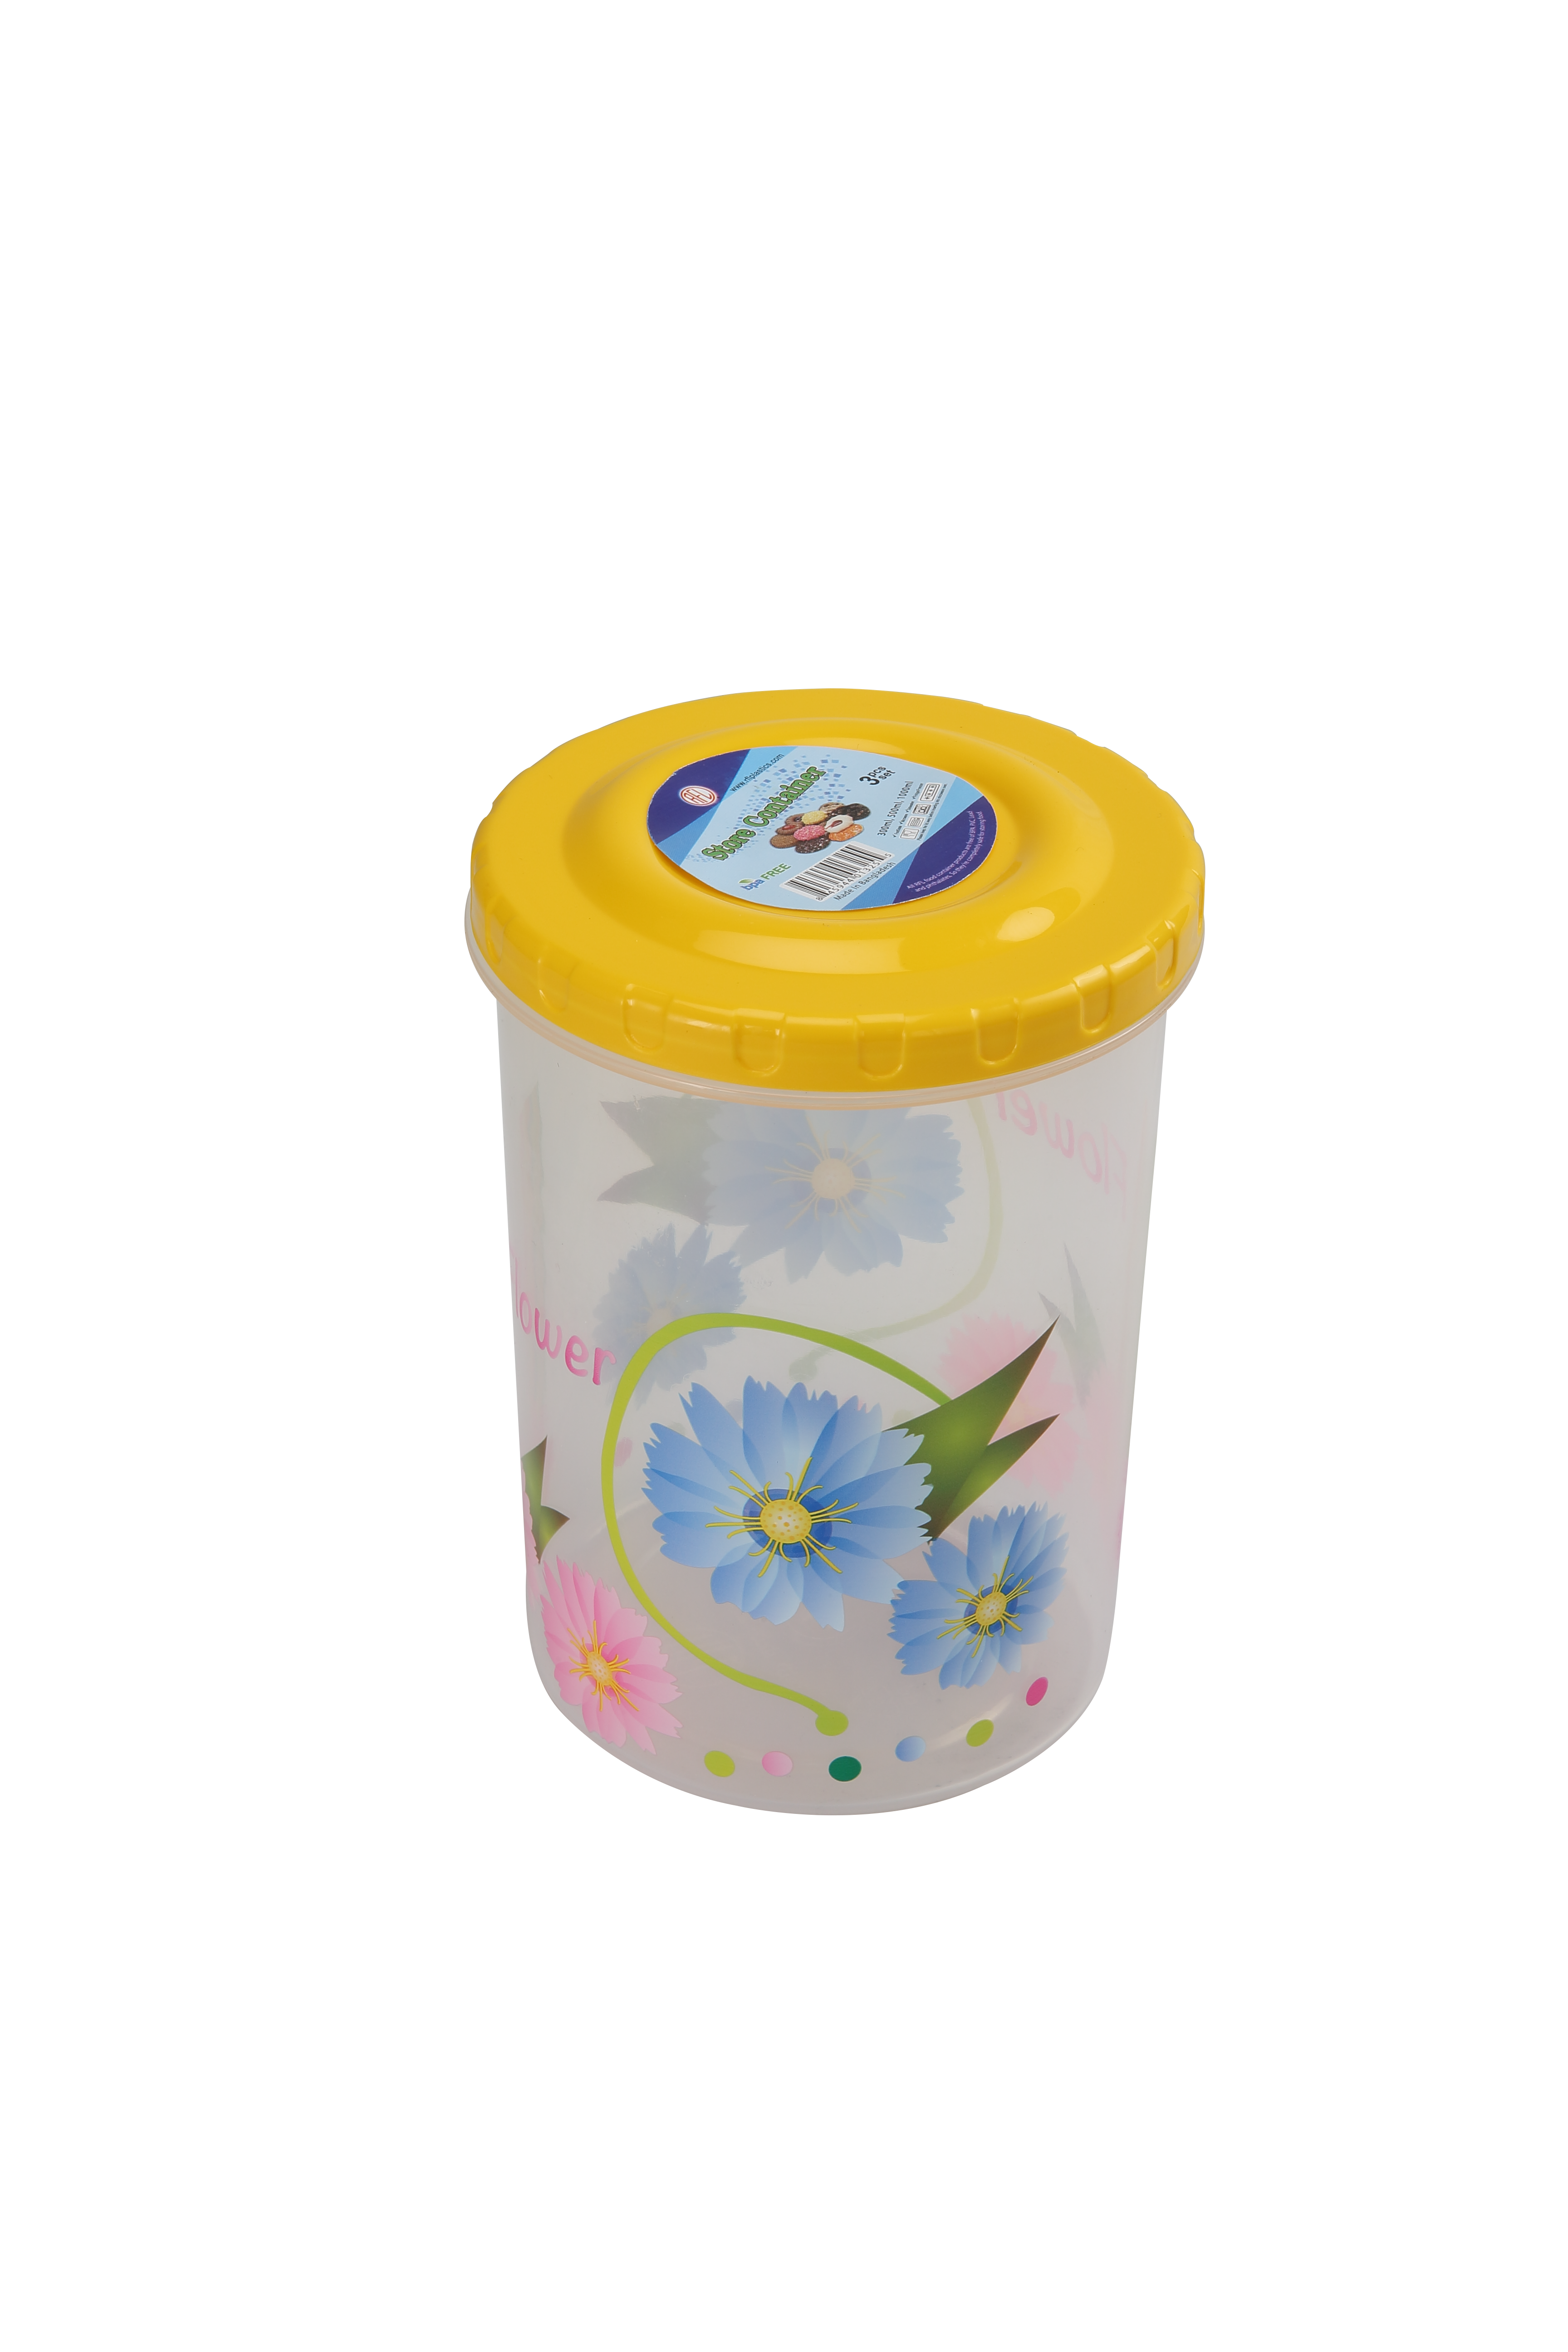 RFL Container: RFL Plastic Container Manufacturer In